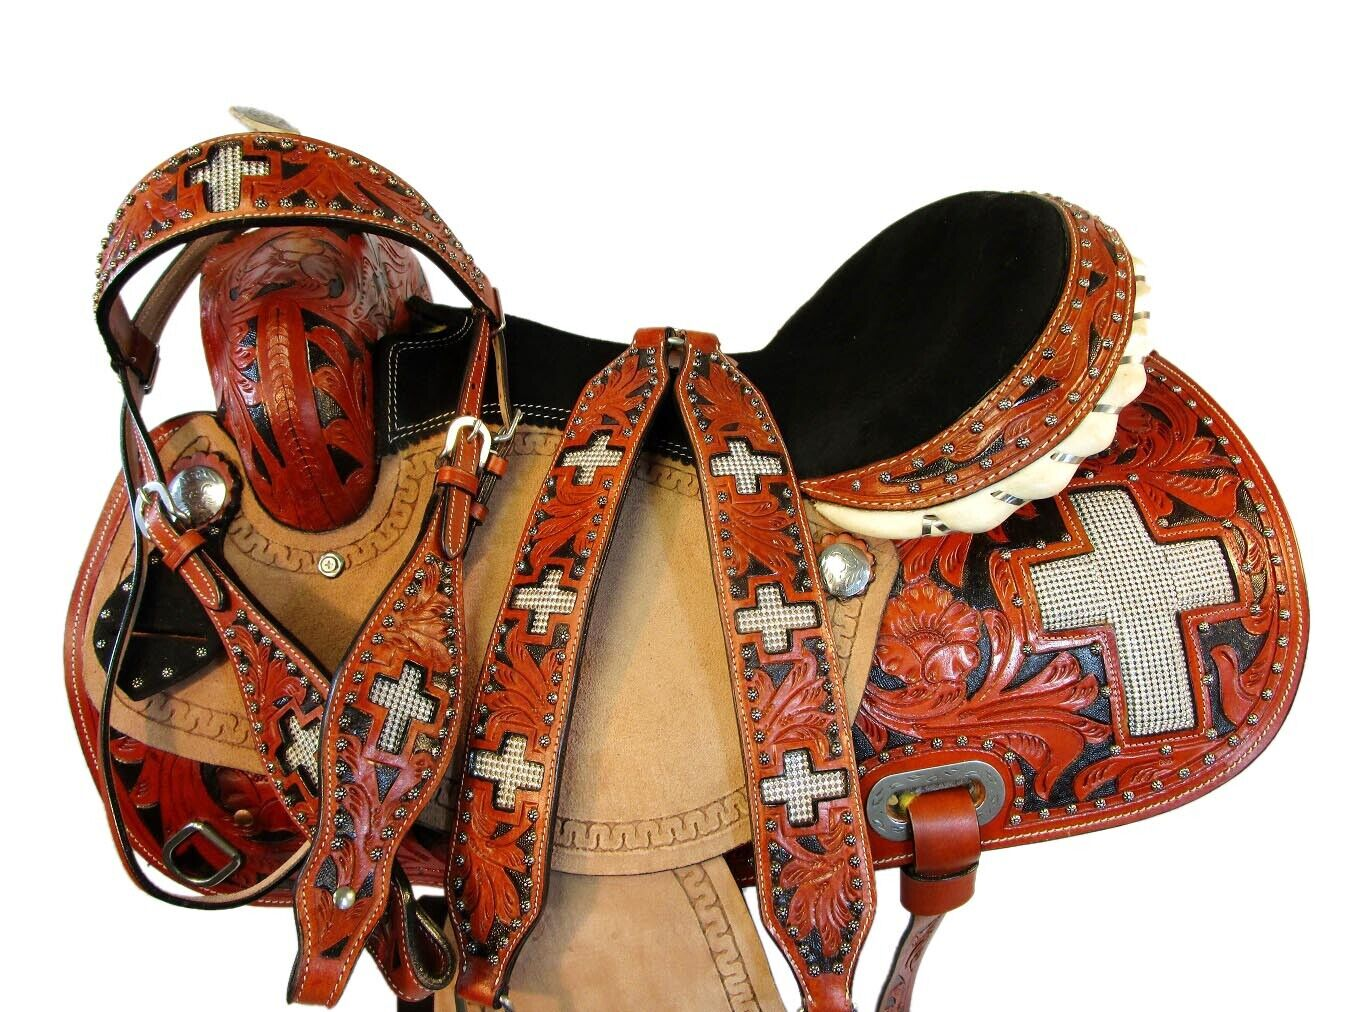 15 16 HAND TOOLED CROSS SHOW WESTERN BARREL RACING HORSE SADDLE PLEASURE LEATHER